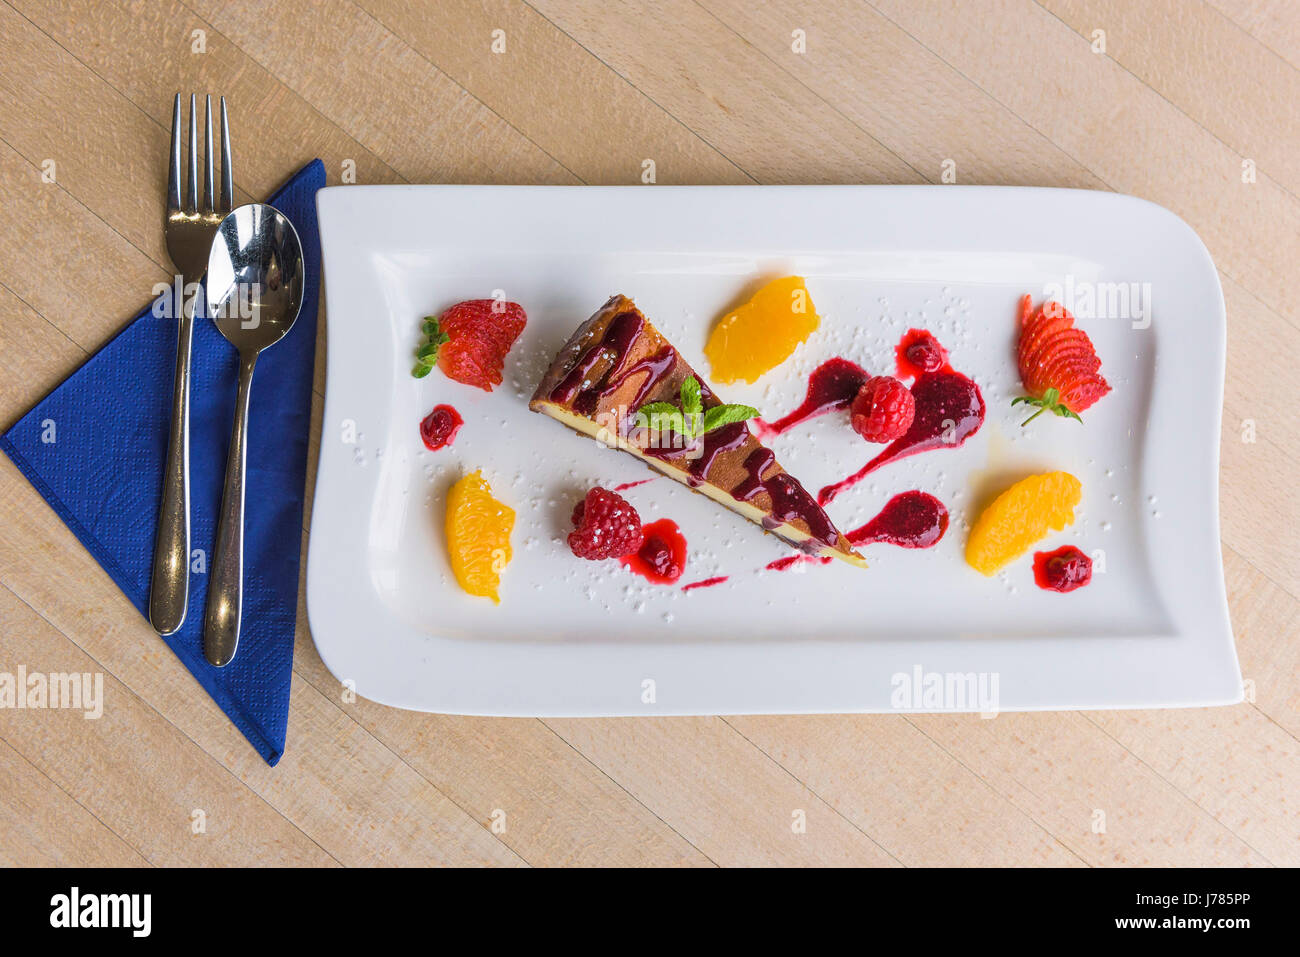 A closeup view of a colourful dessert served in a restaurant; Food; Sweet; Pudding; Cheesecake; Fruit; Tasty; Attractive - Stock Image